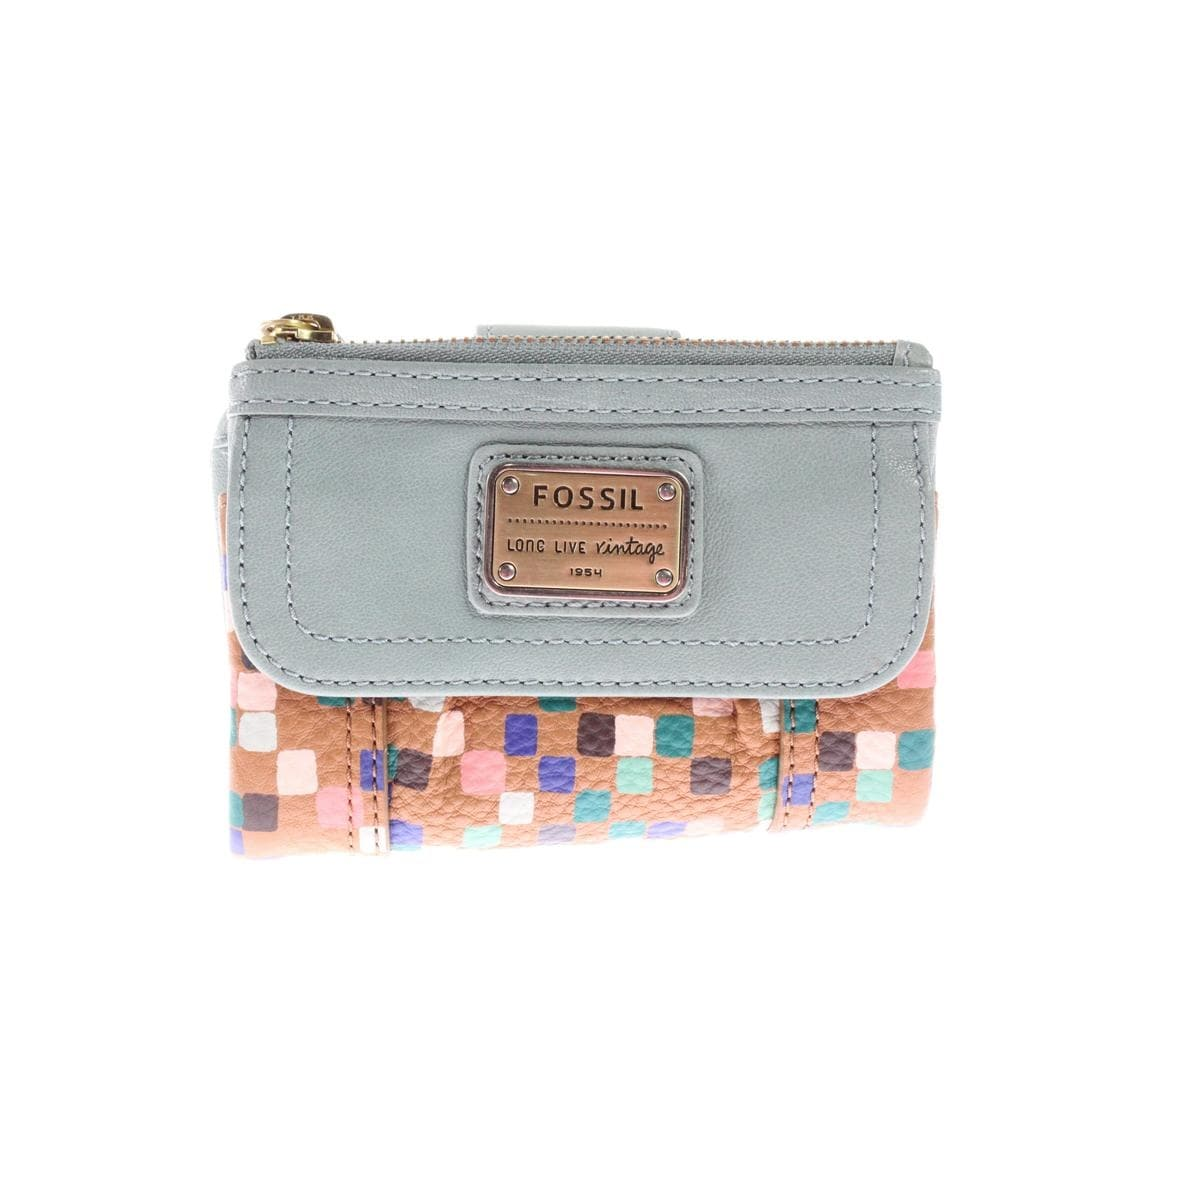 eef5e9a272ab Shop Fossil Womens Emory Trifold Wallet Leather Mixed Media - o/s - Free  Shipping Today - Overstock - 21009519